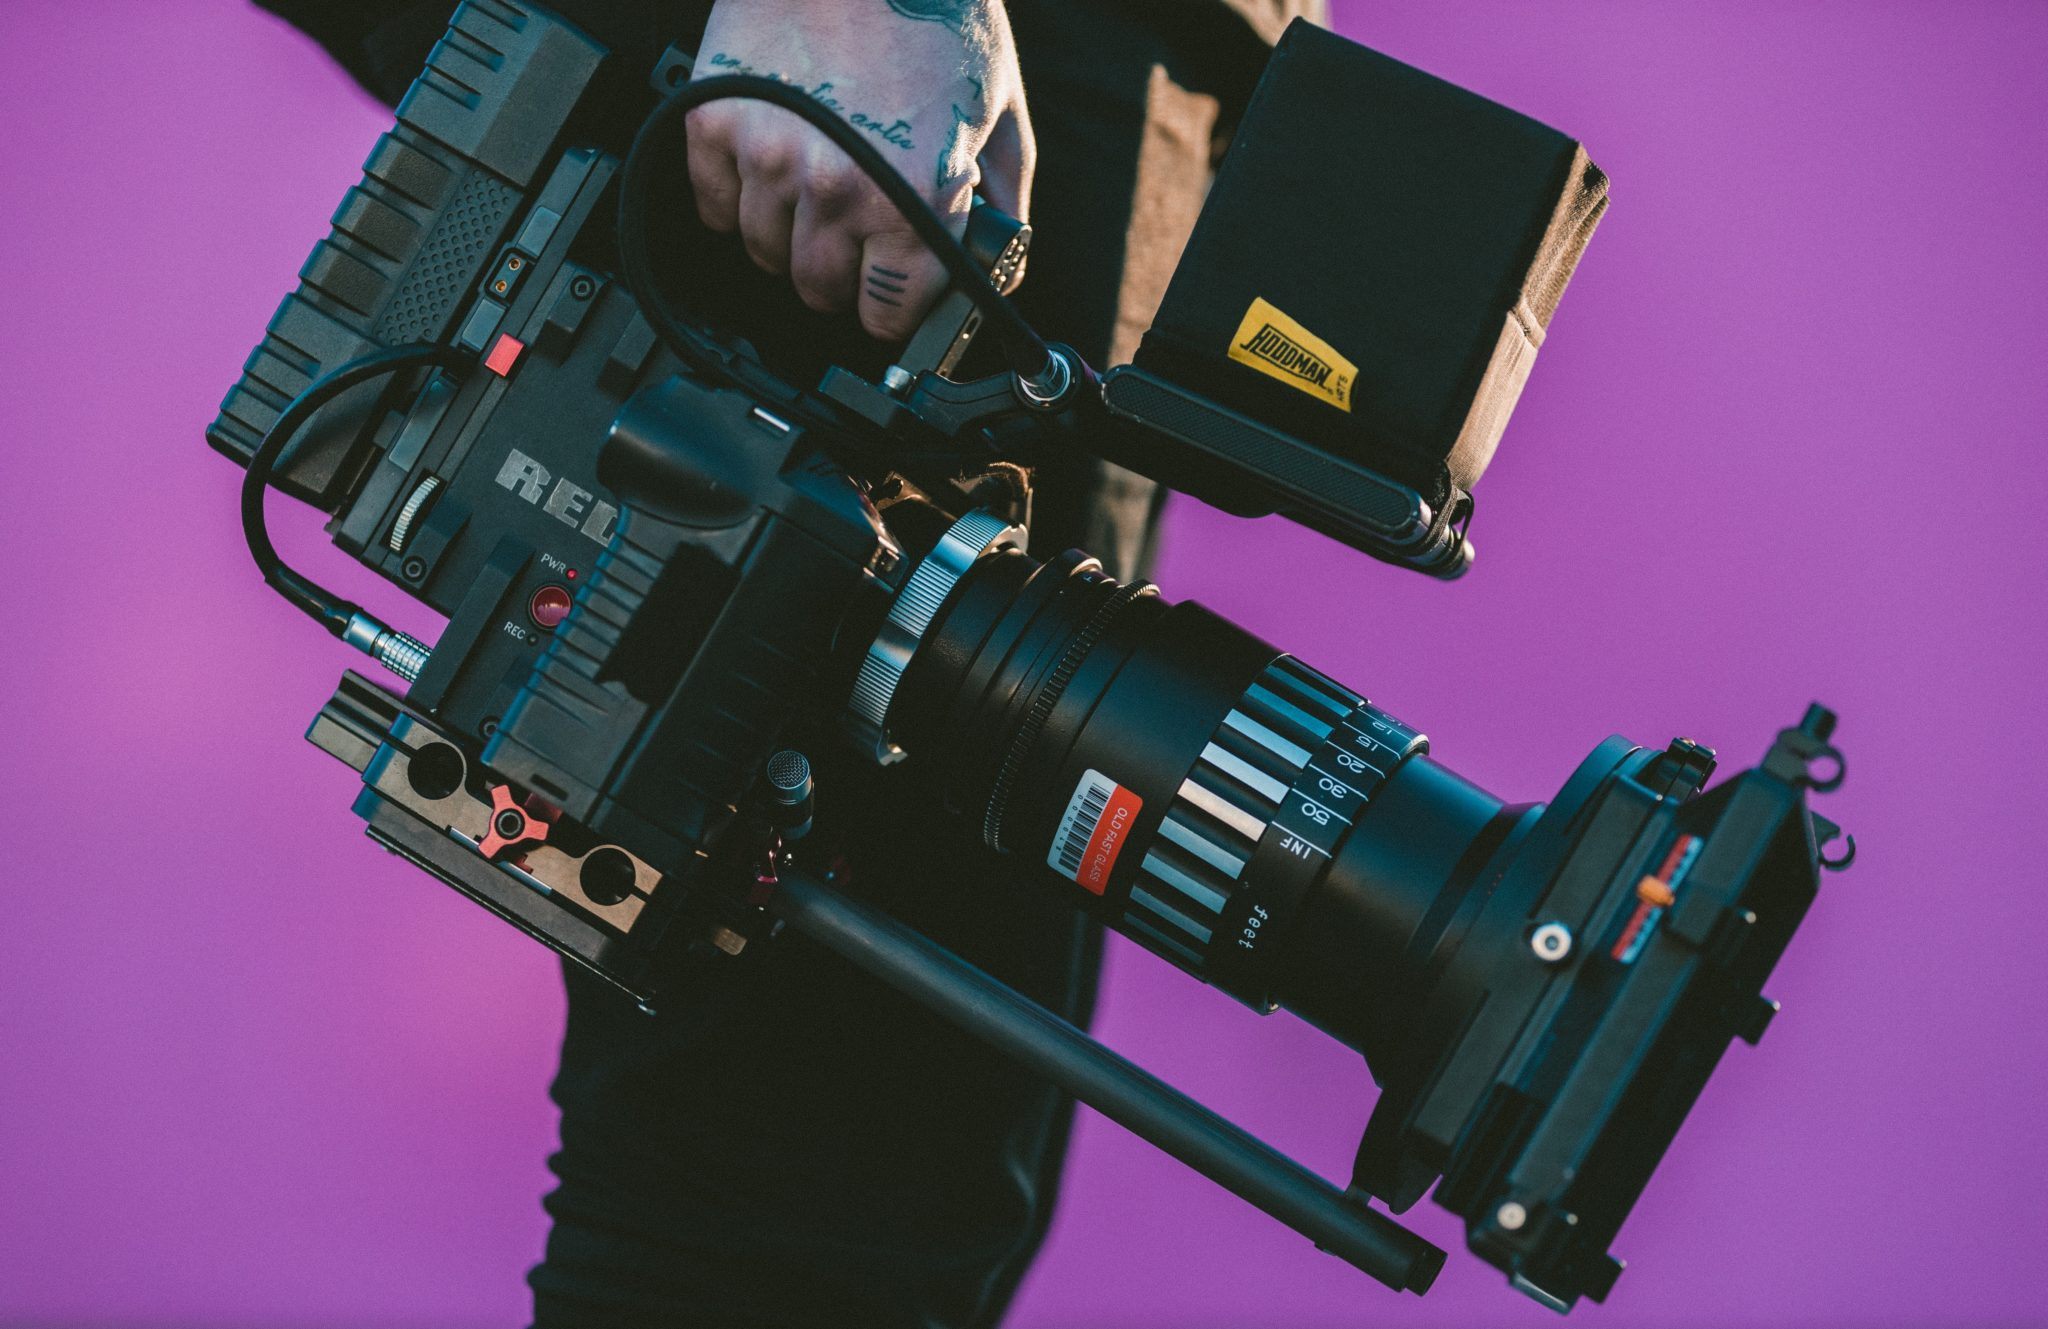 Tribunal on recorded video evidence and Article 8 considerations